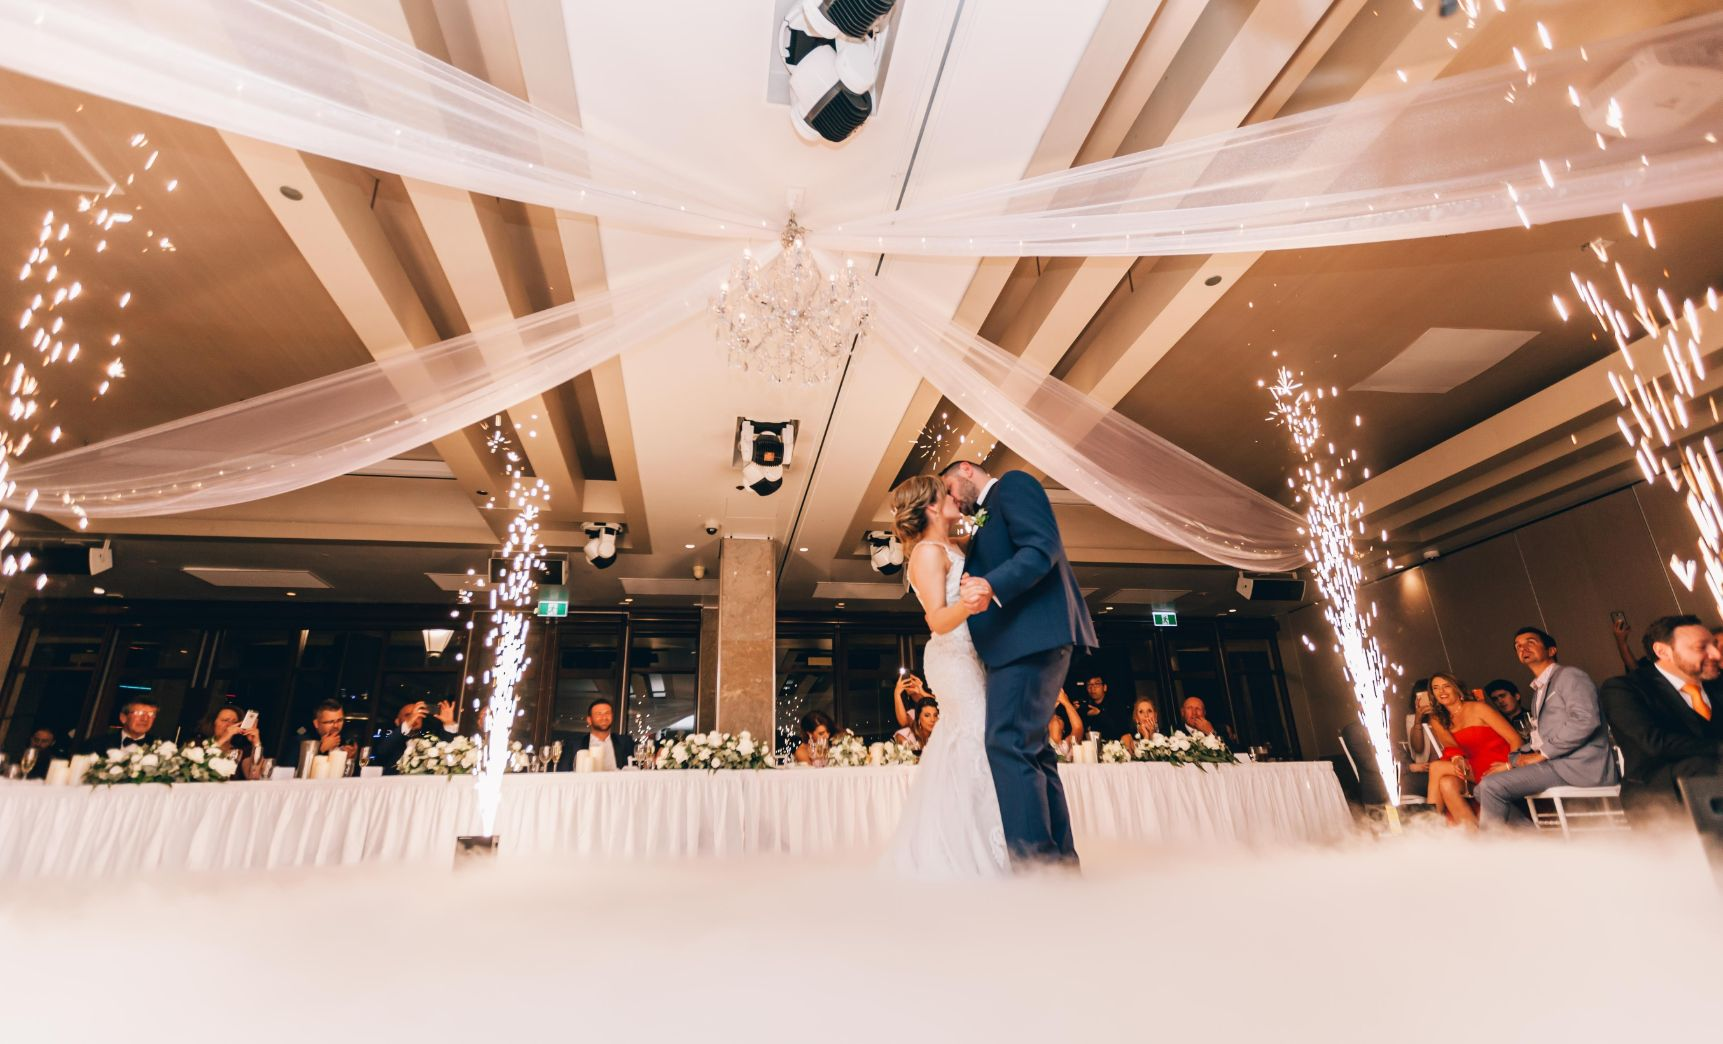 Dancing on the clouds & dazzle effect during wedding first dance